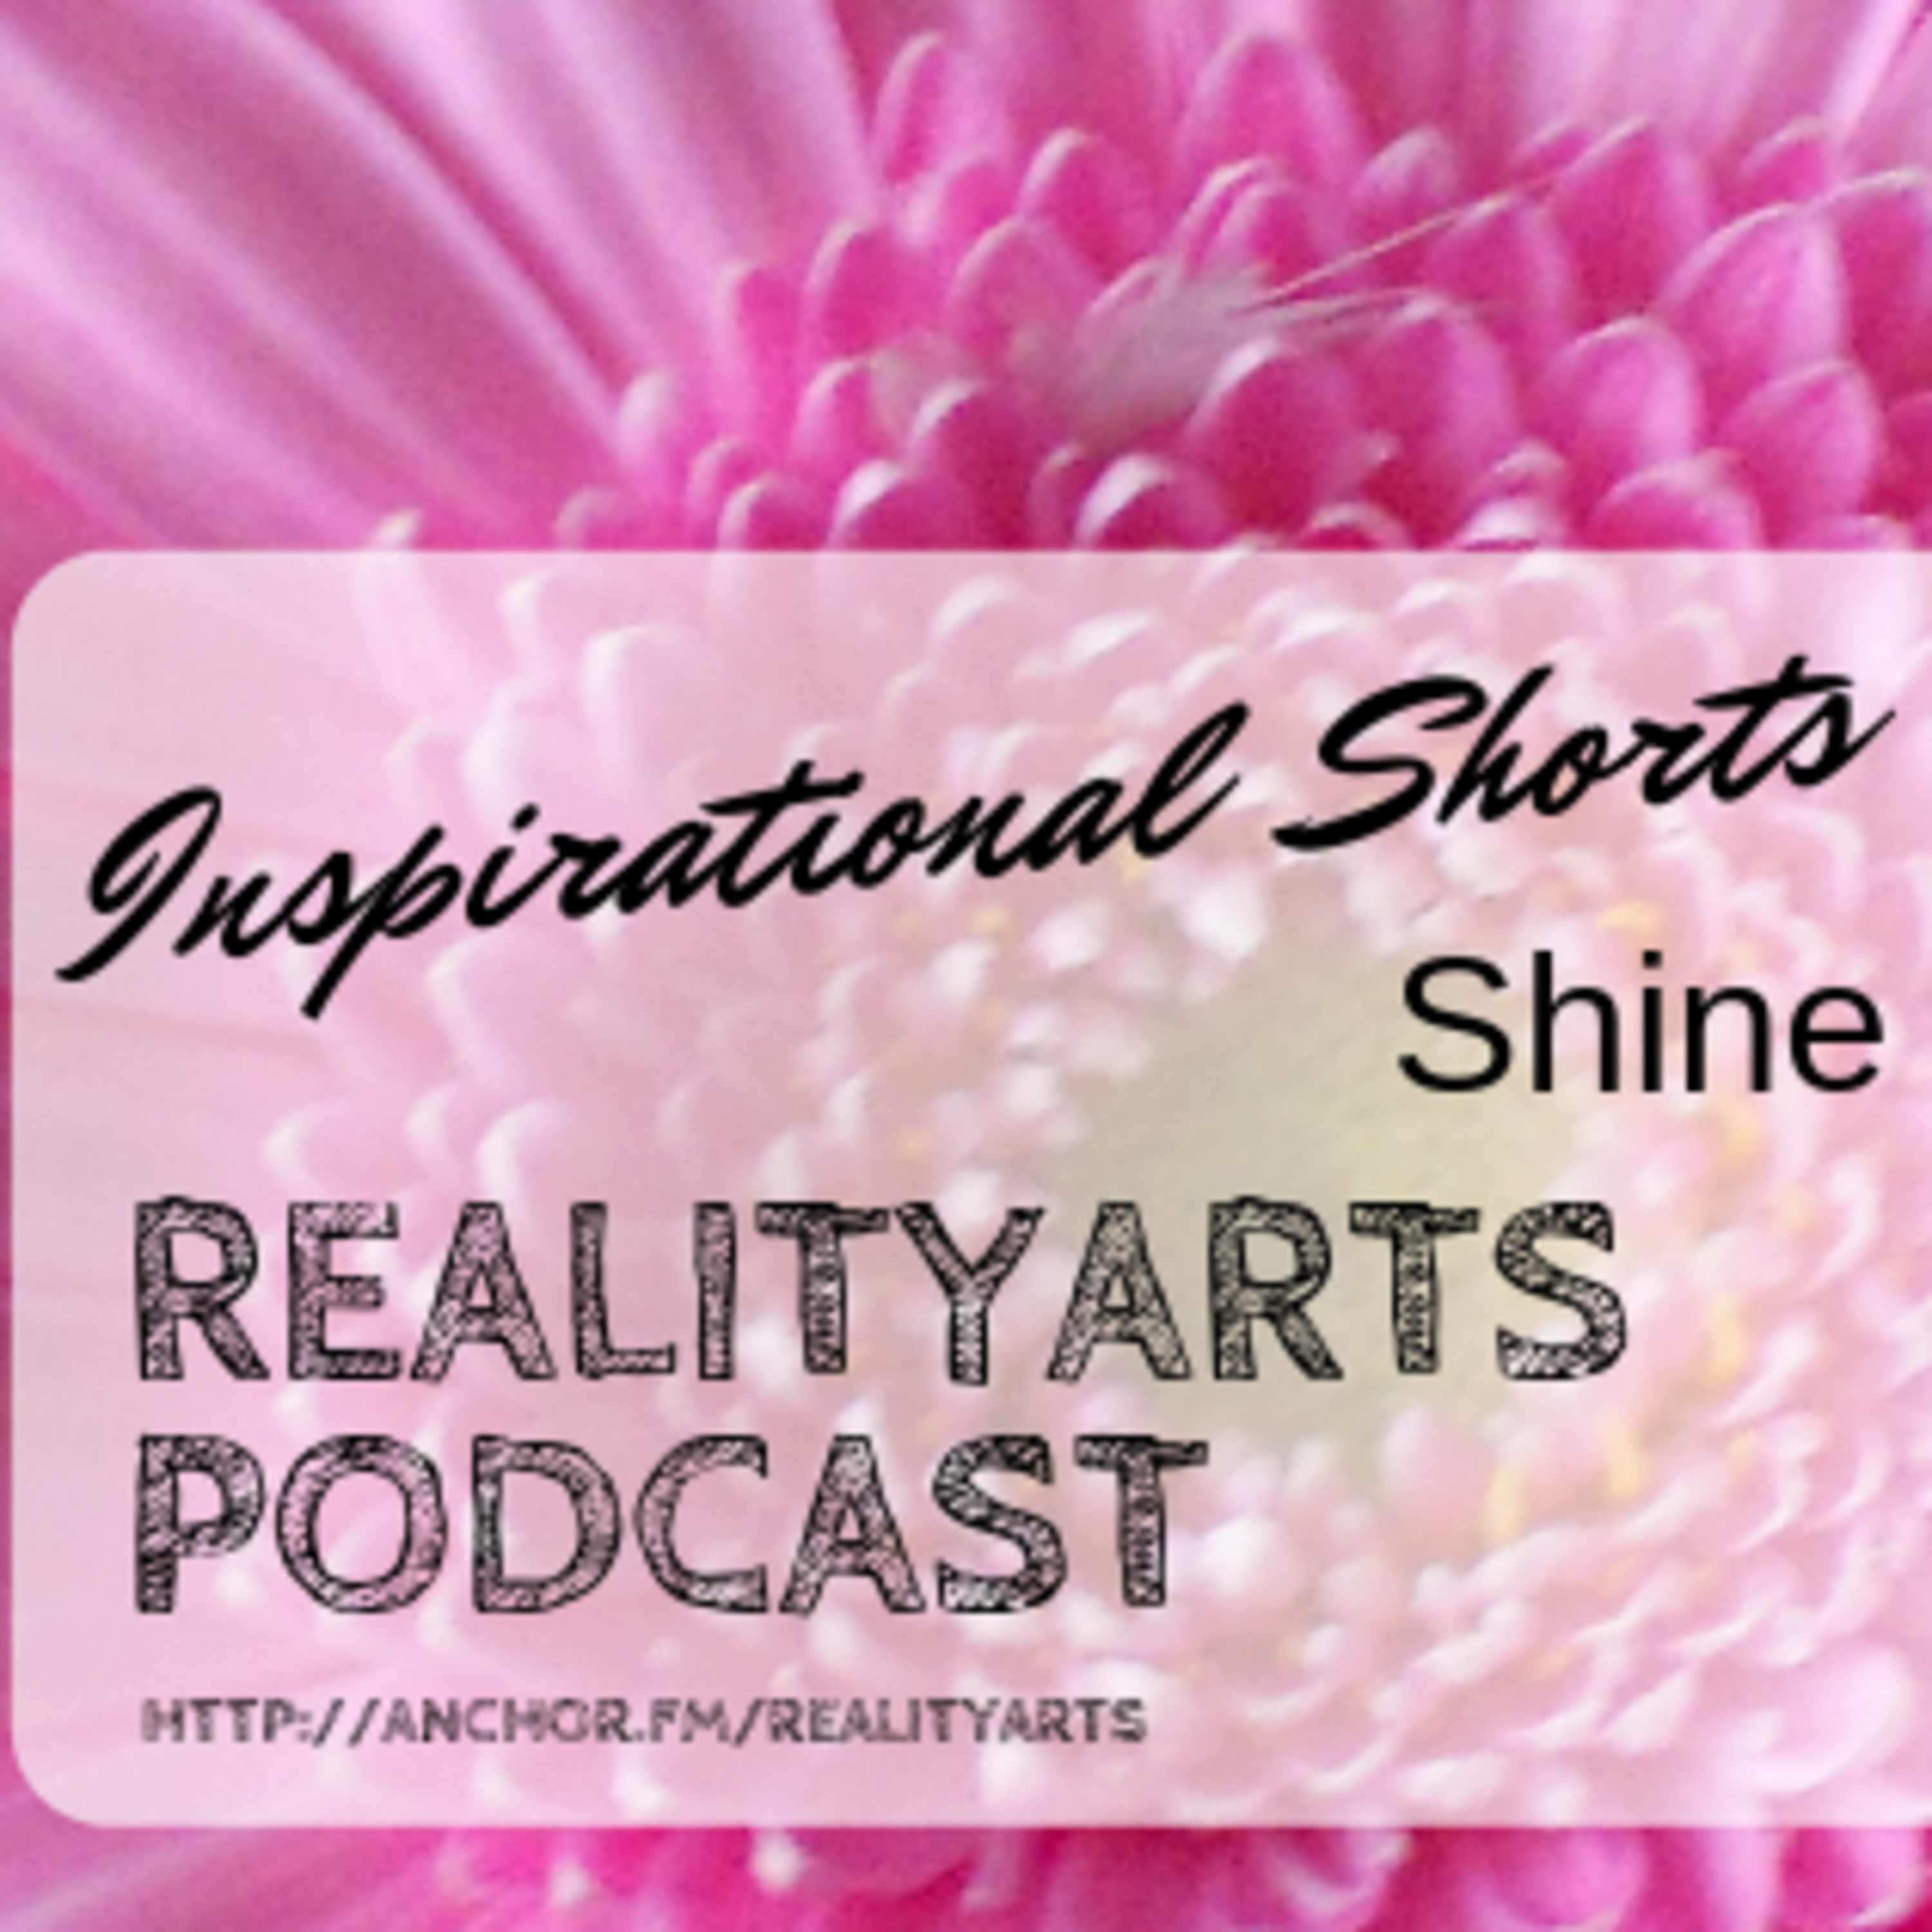 Celebrating the 100th Episode of the Podcast - Inspirational Shorts